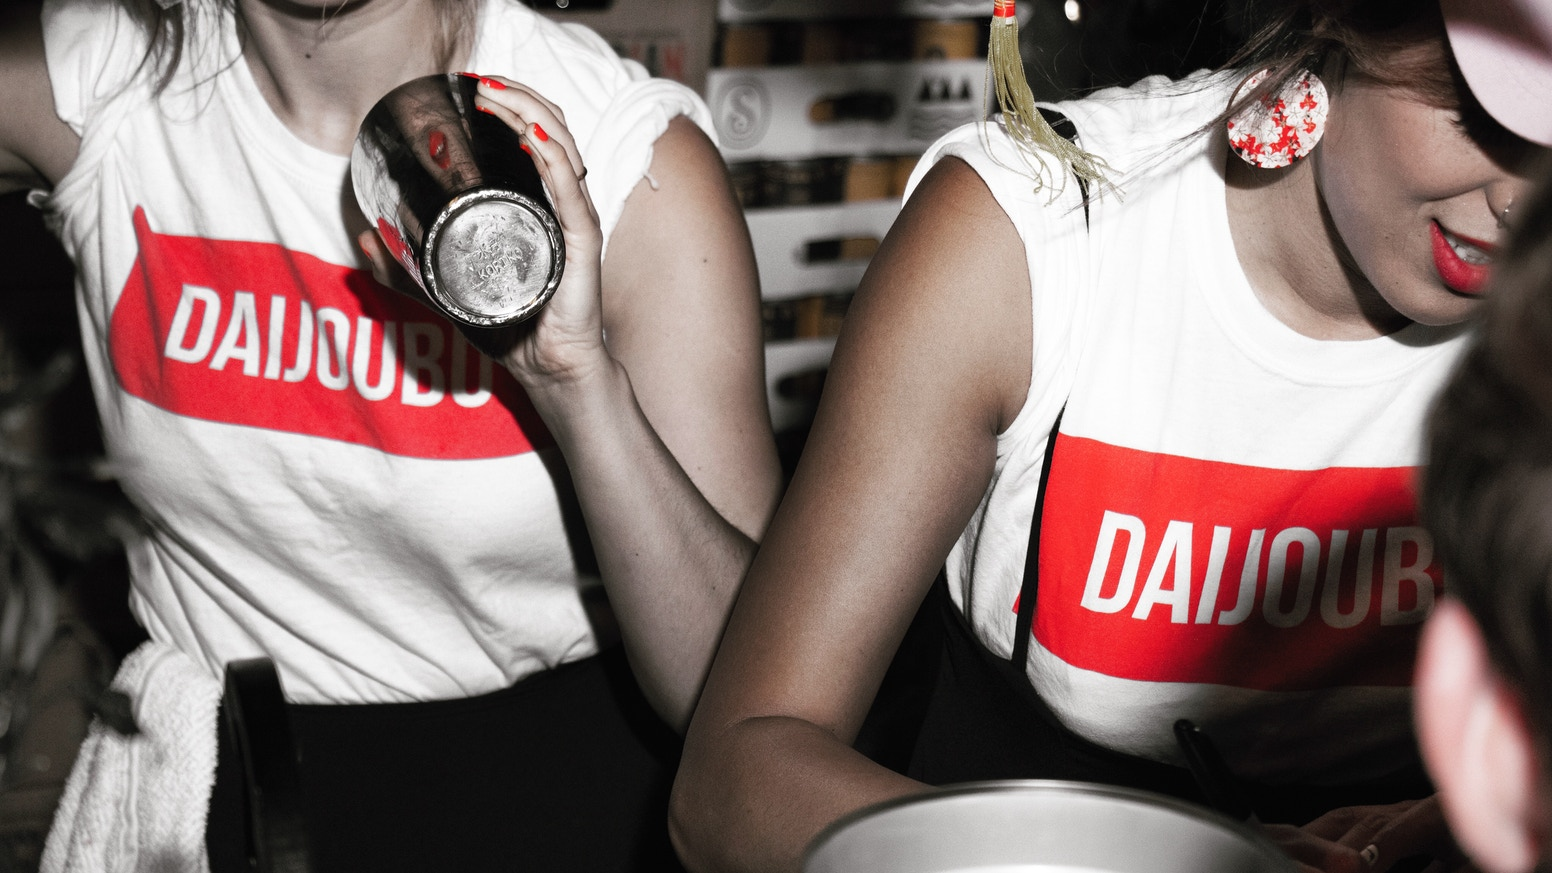 Bring Daijoubu, an Asian-American cocktail pop up, on tour. Run by 2 ATX based, award winning, asian-american bartenders and women.